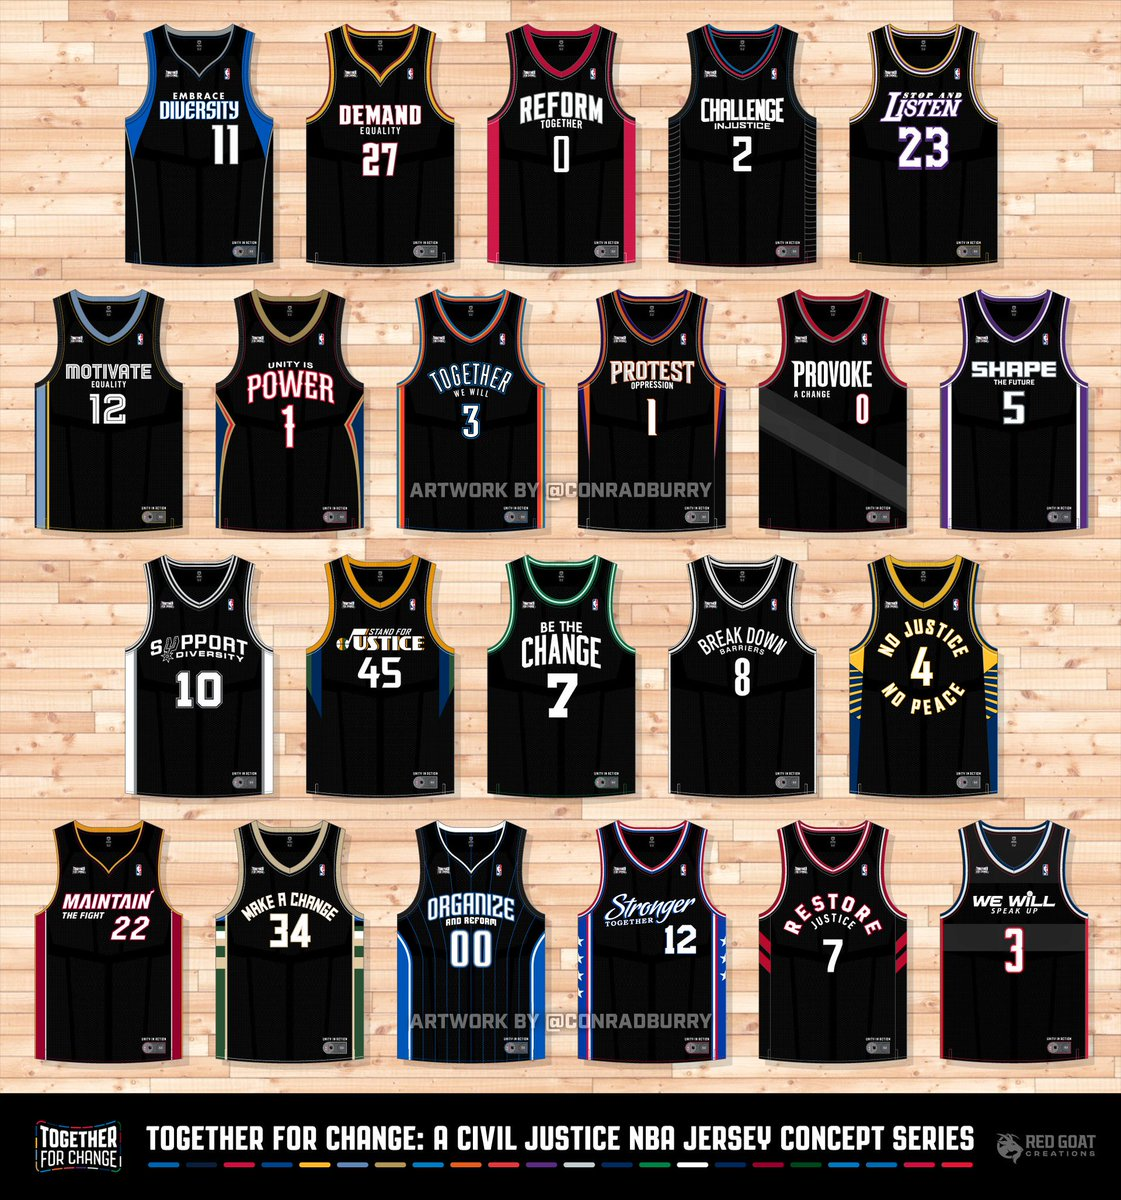 The @NBA and @TheNBPA should absolutely make @conradburry's 'Together For Change' jerseys, sell 'em online, and then give all of the proceeds to charities supporting Black lives, rights, and communities. https://t.co/2kiDmapb3P